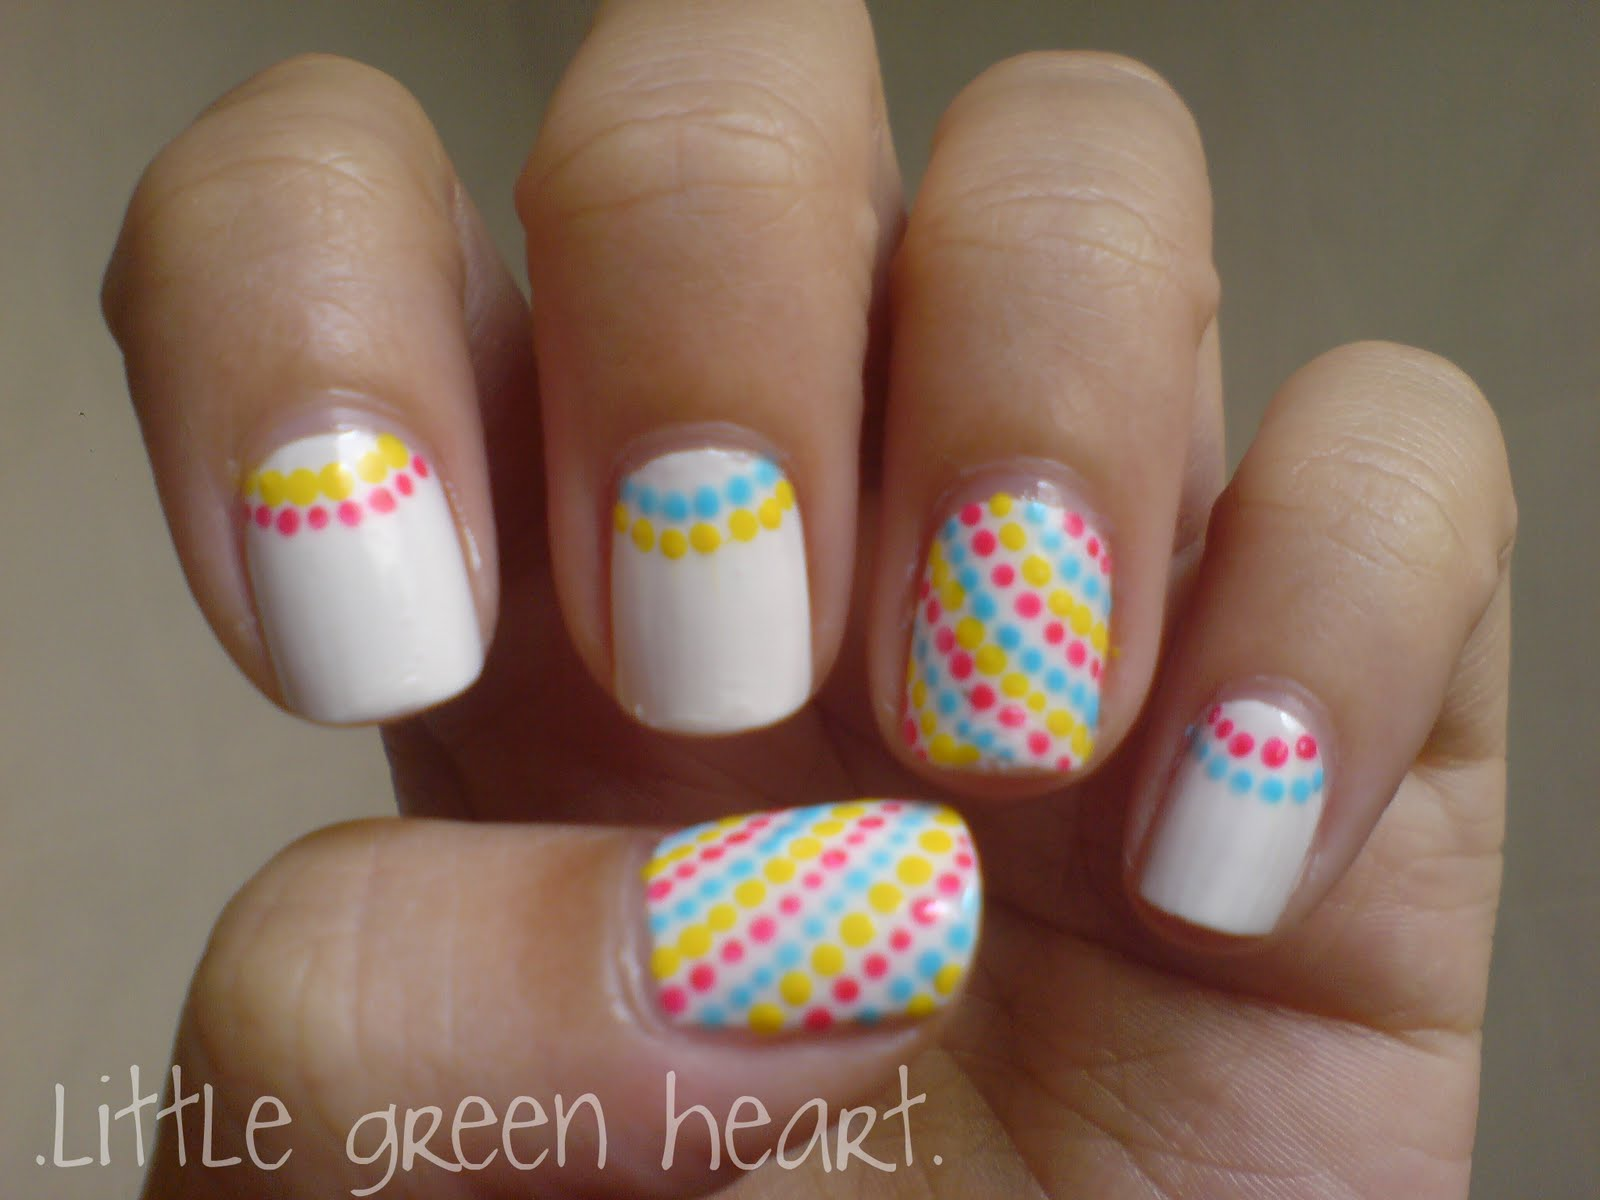 Colorful nail designs for short nails top reviewed nail gel 50 most stylish short  nail artShort Nails Designs Pictures Image collections   Nail Art Designs. Easy At Home Nail Designs For Short Nails. Home Design Ideas